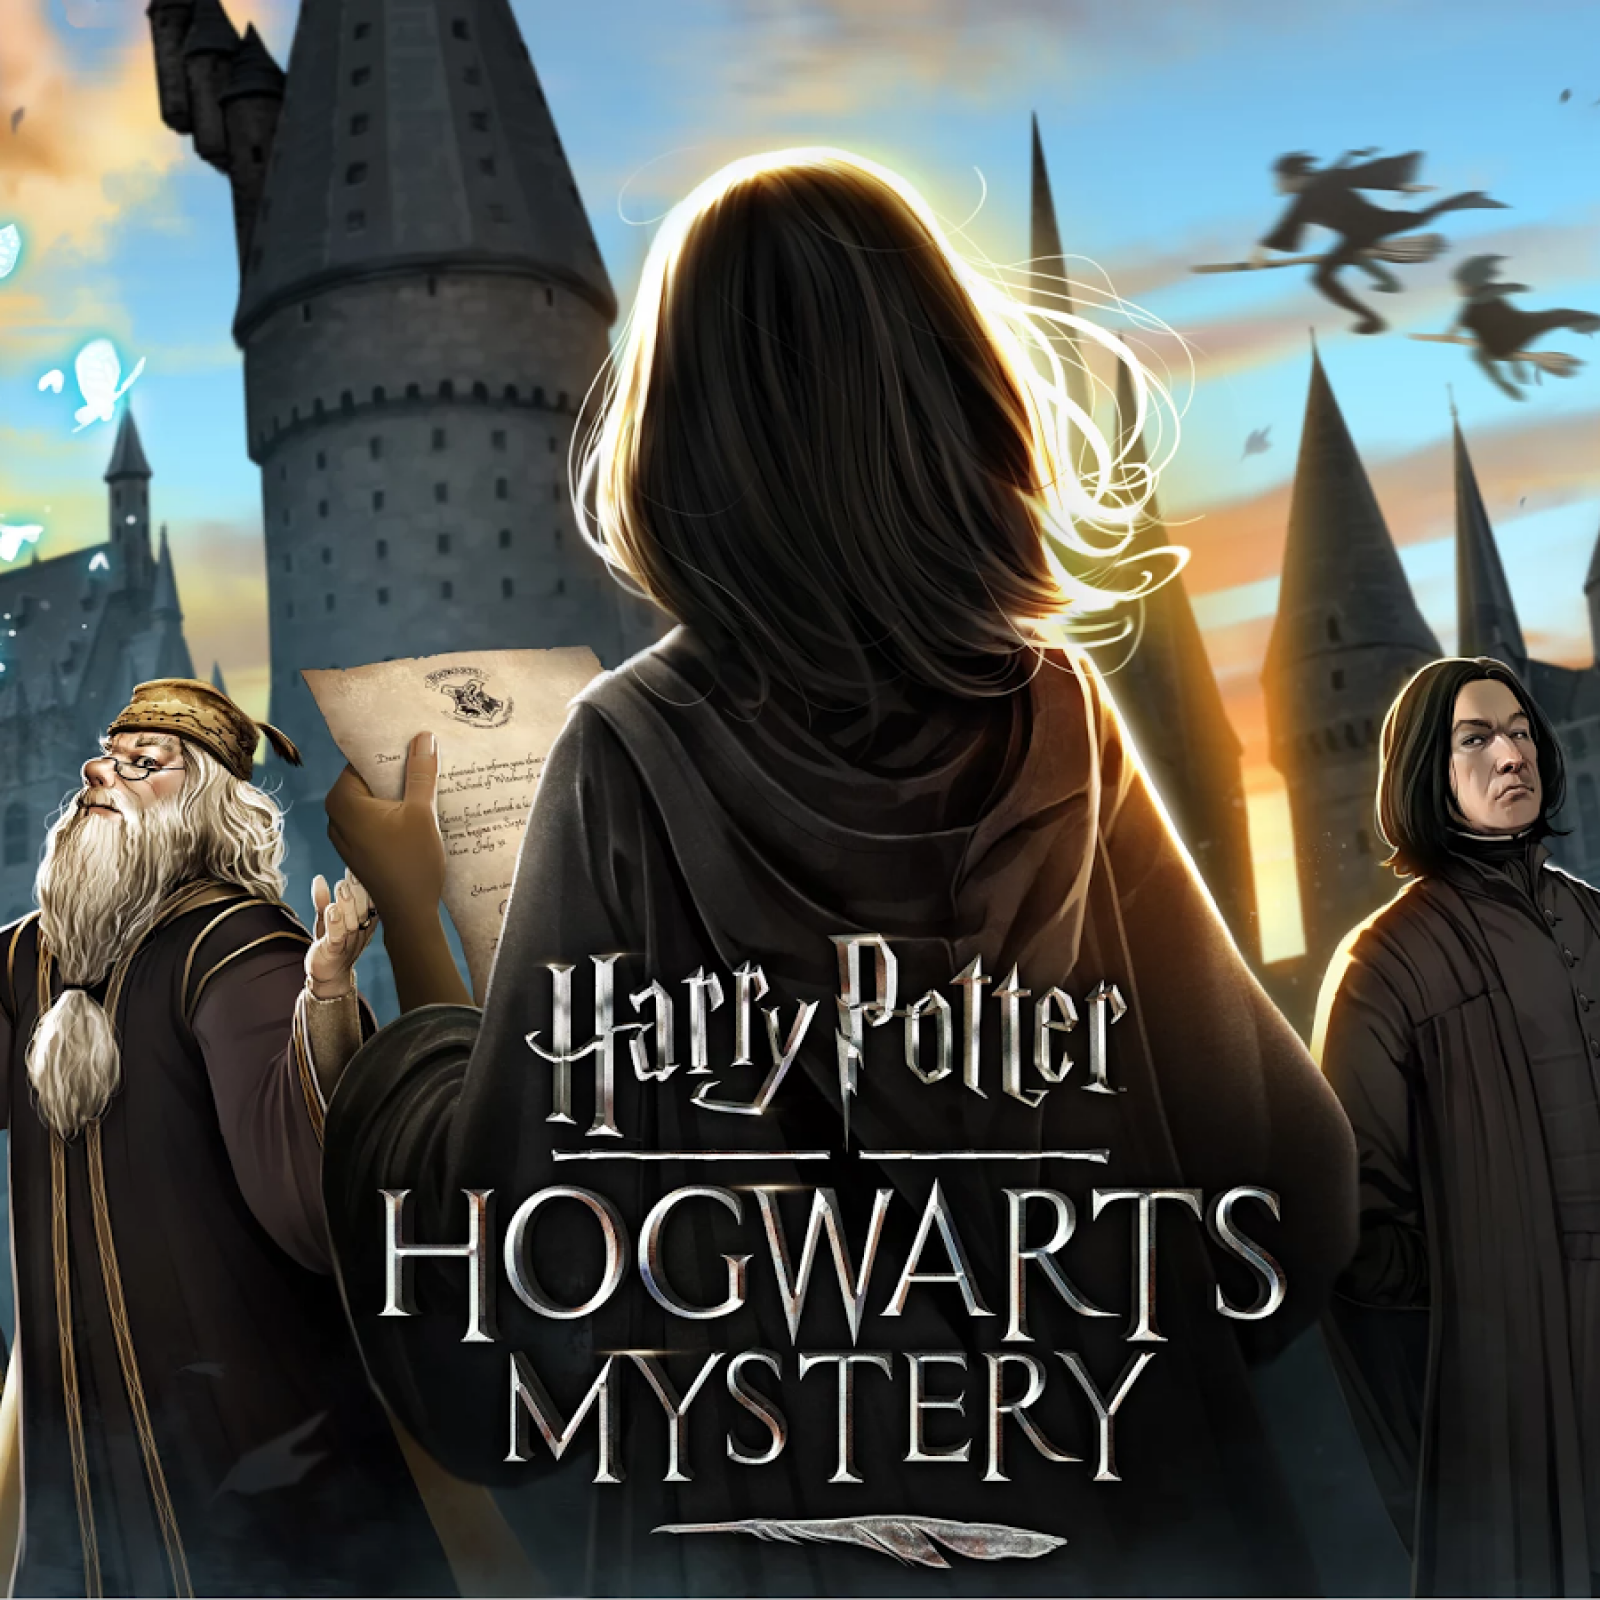 How to Restart 'Harry Potter Hogwarts Mystery': Reset Game